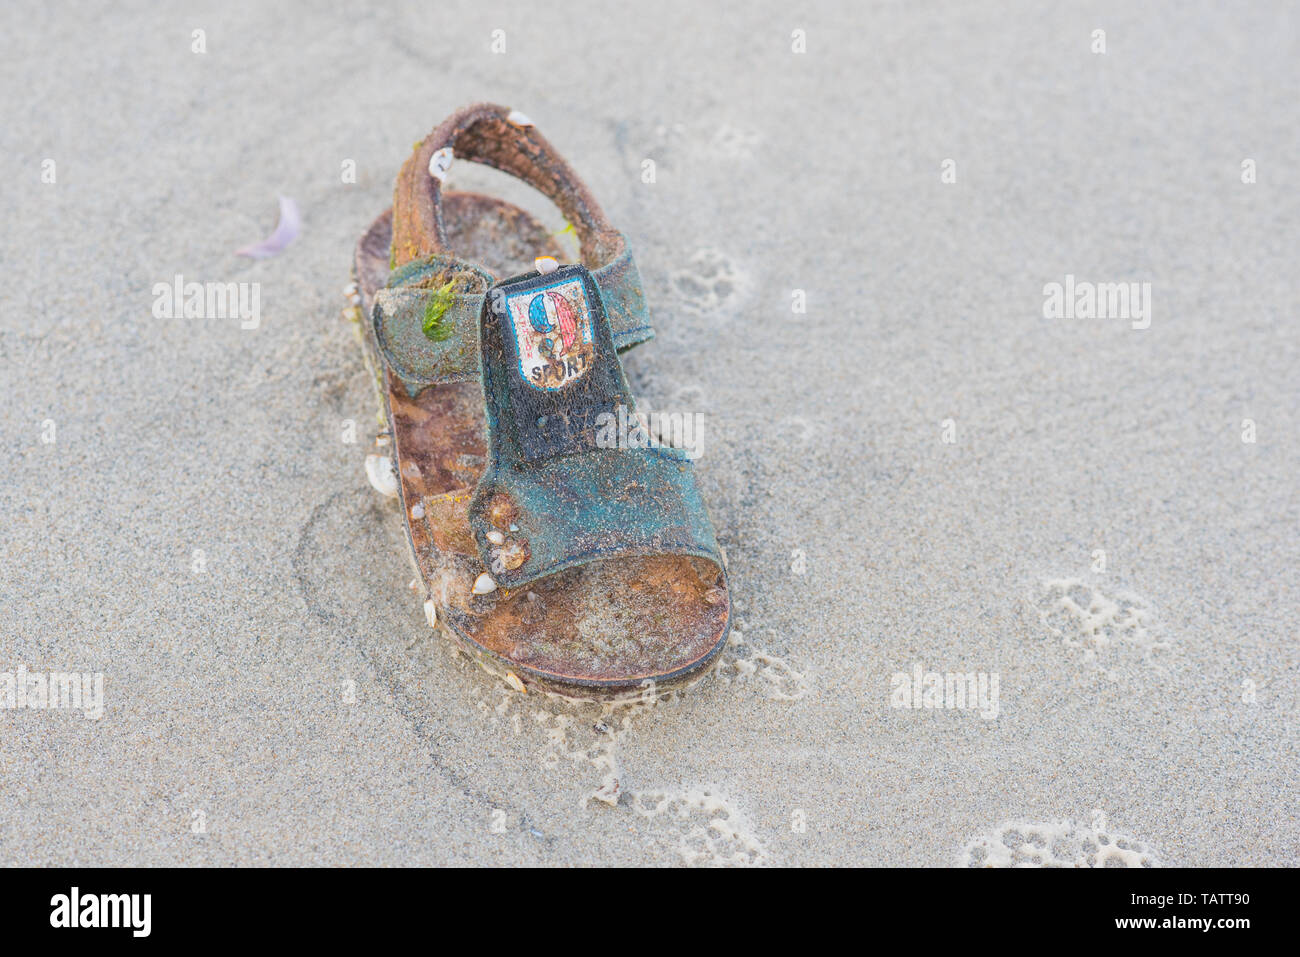 Da Nang, Vietnam - November 8, 2018: Rotten sandal (with writings on it: 9, sport, fashion, classic) thrown back by sea storm at the beach. - Stock Image